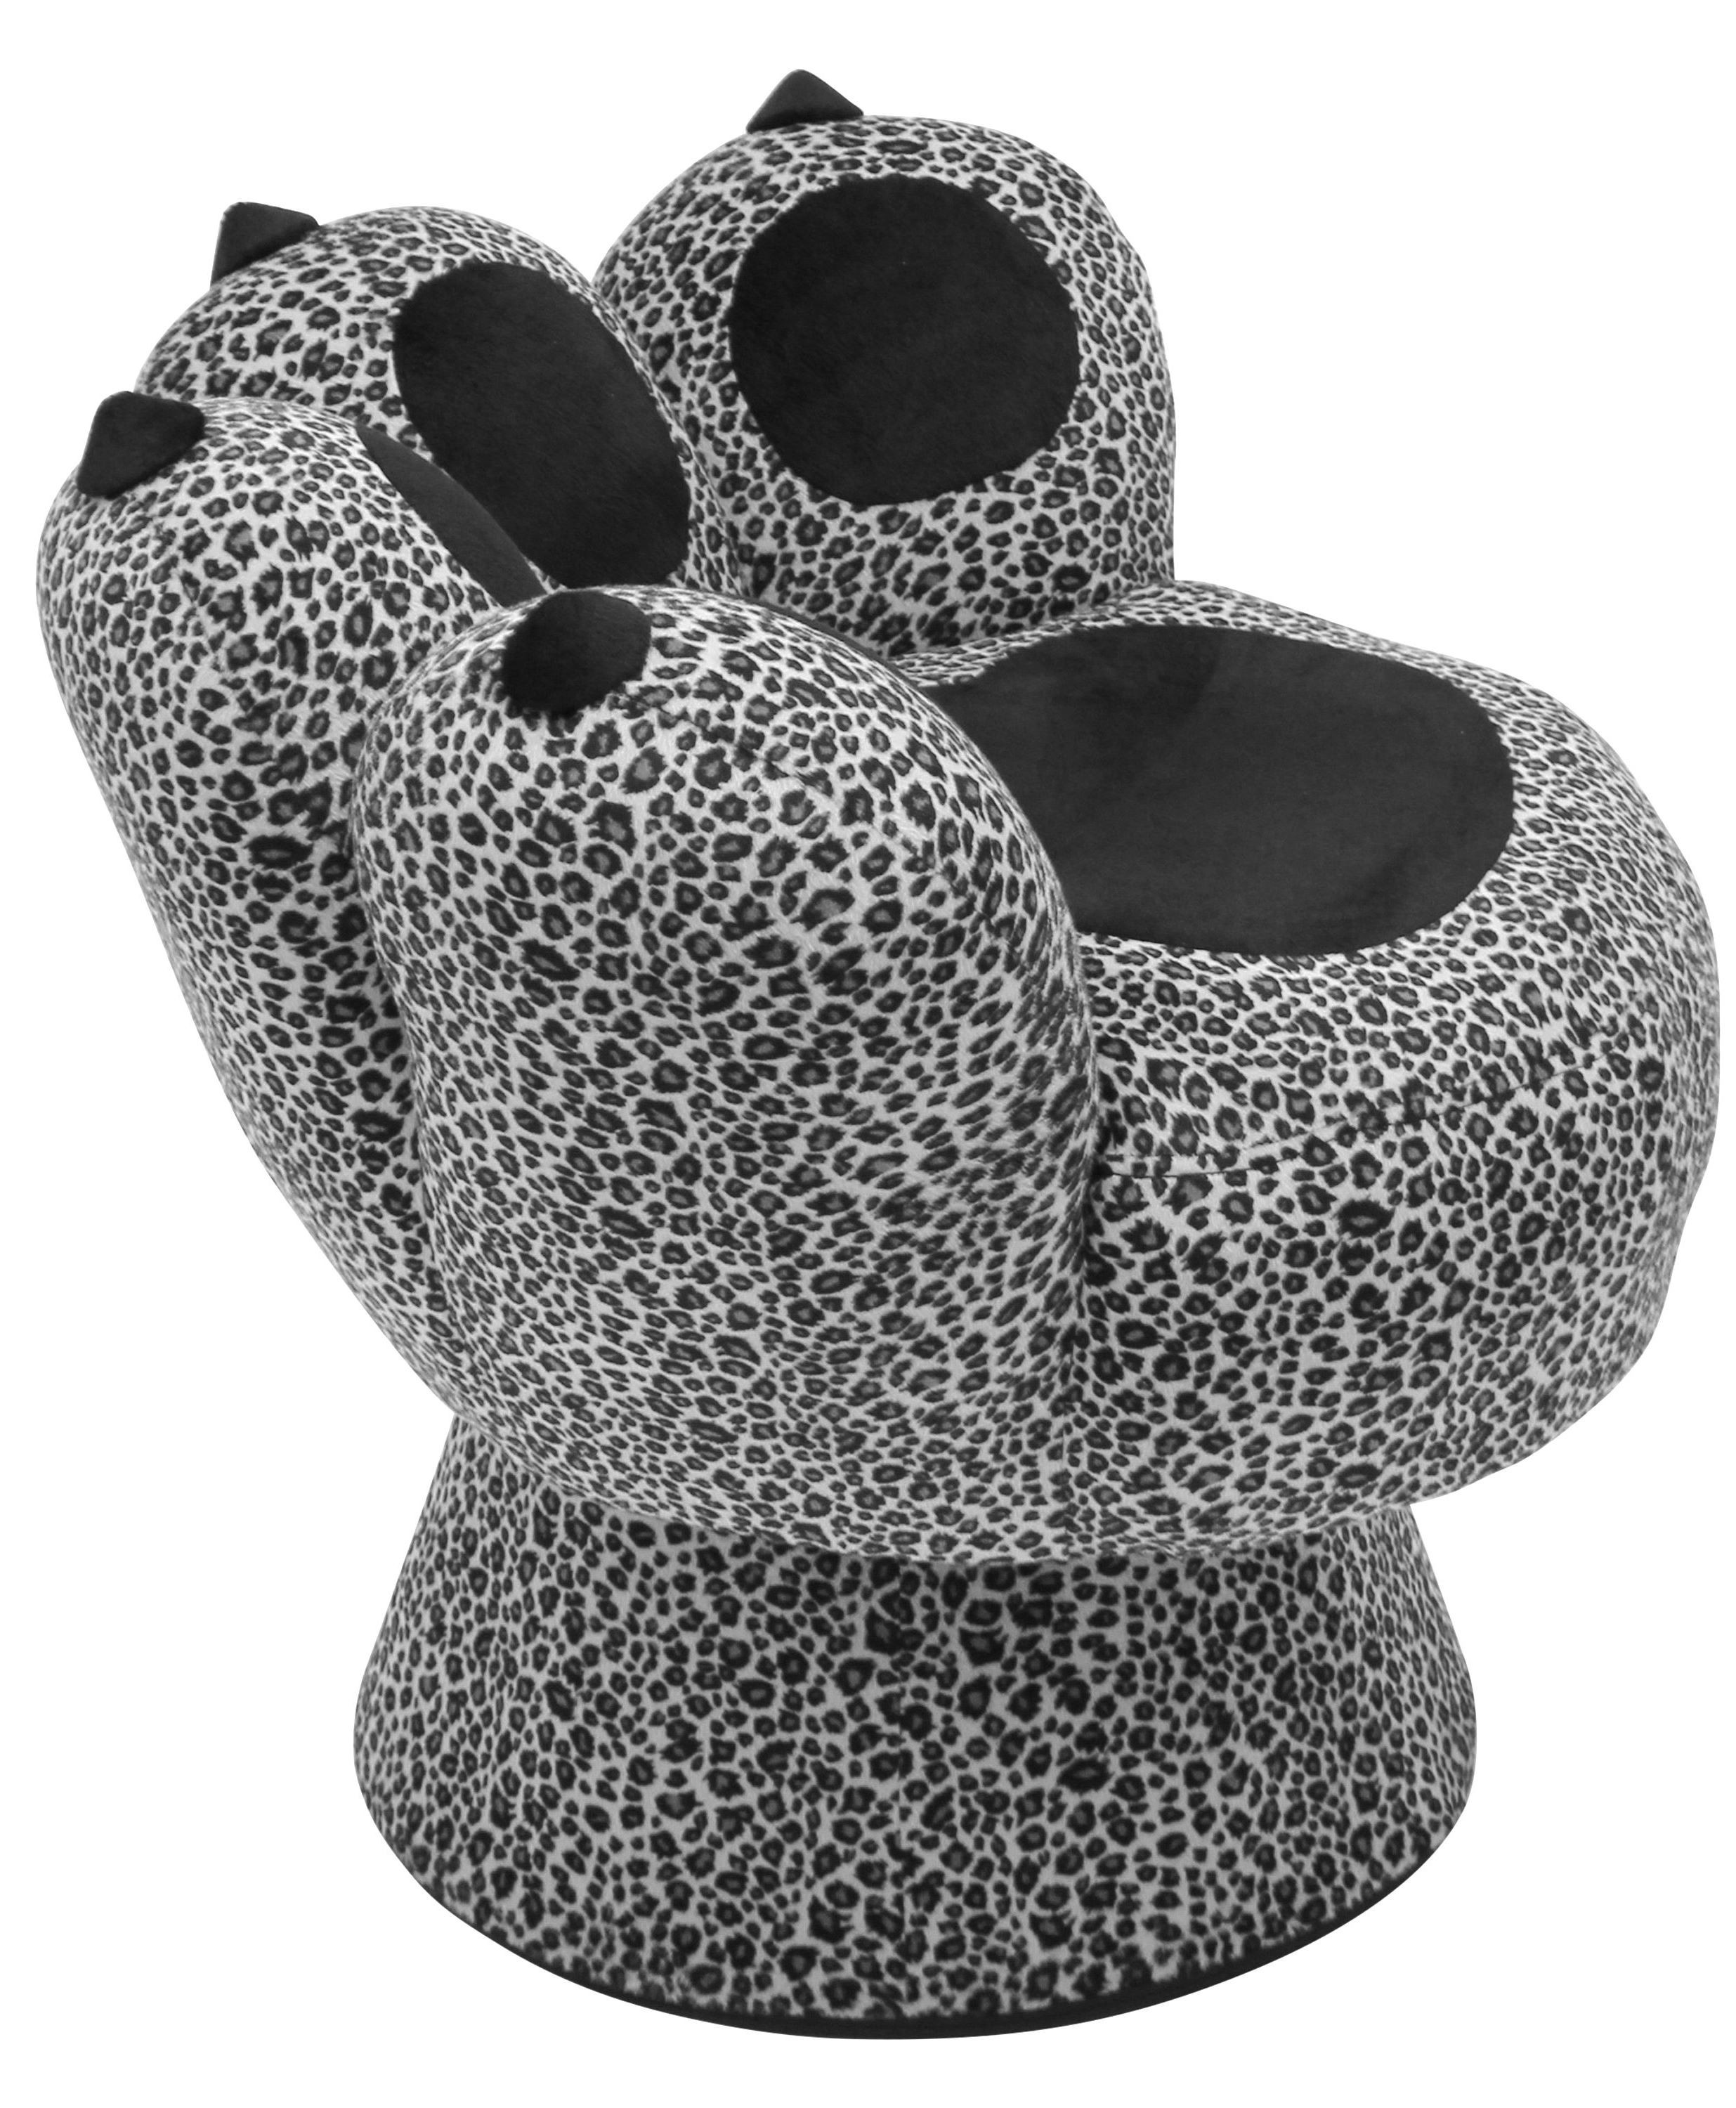 Paw Snow Leopard Chair from Lumisource (CHR-PAW SNLP ...